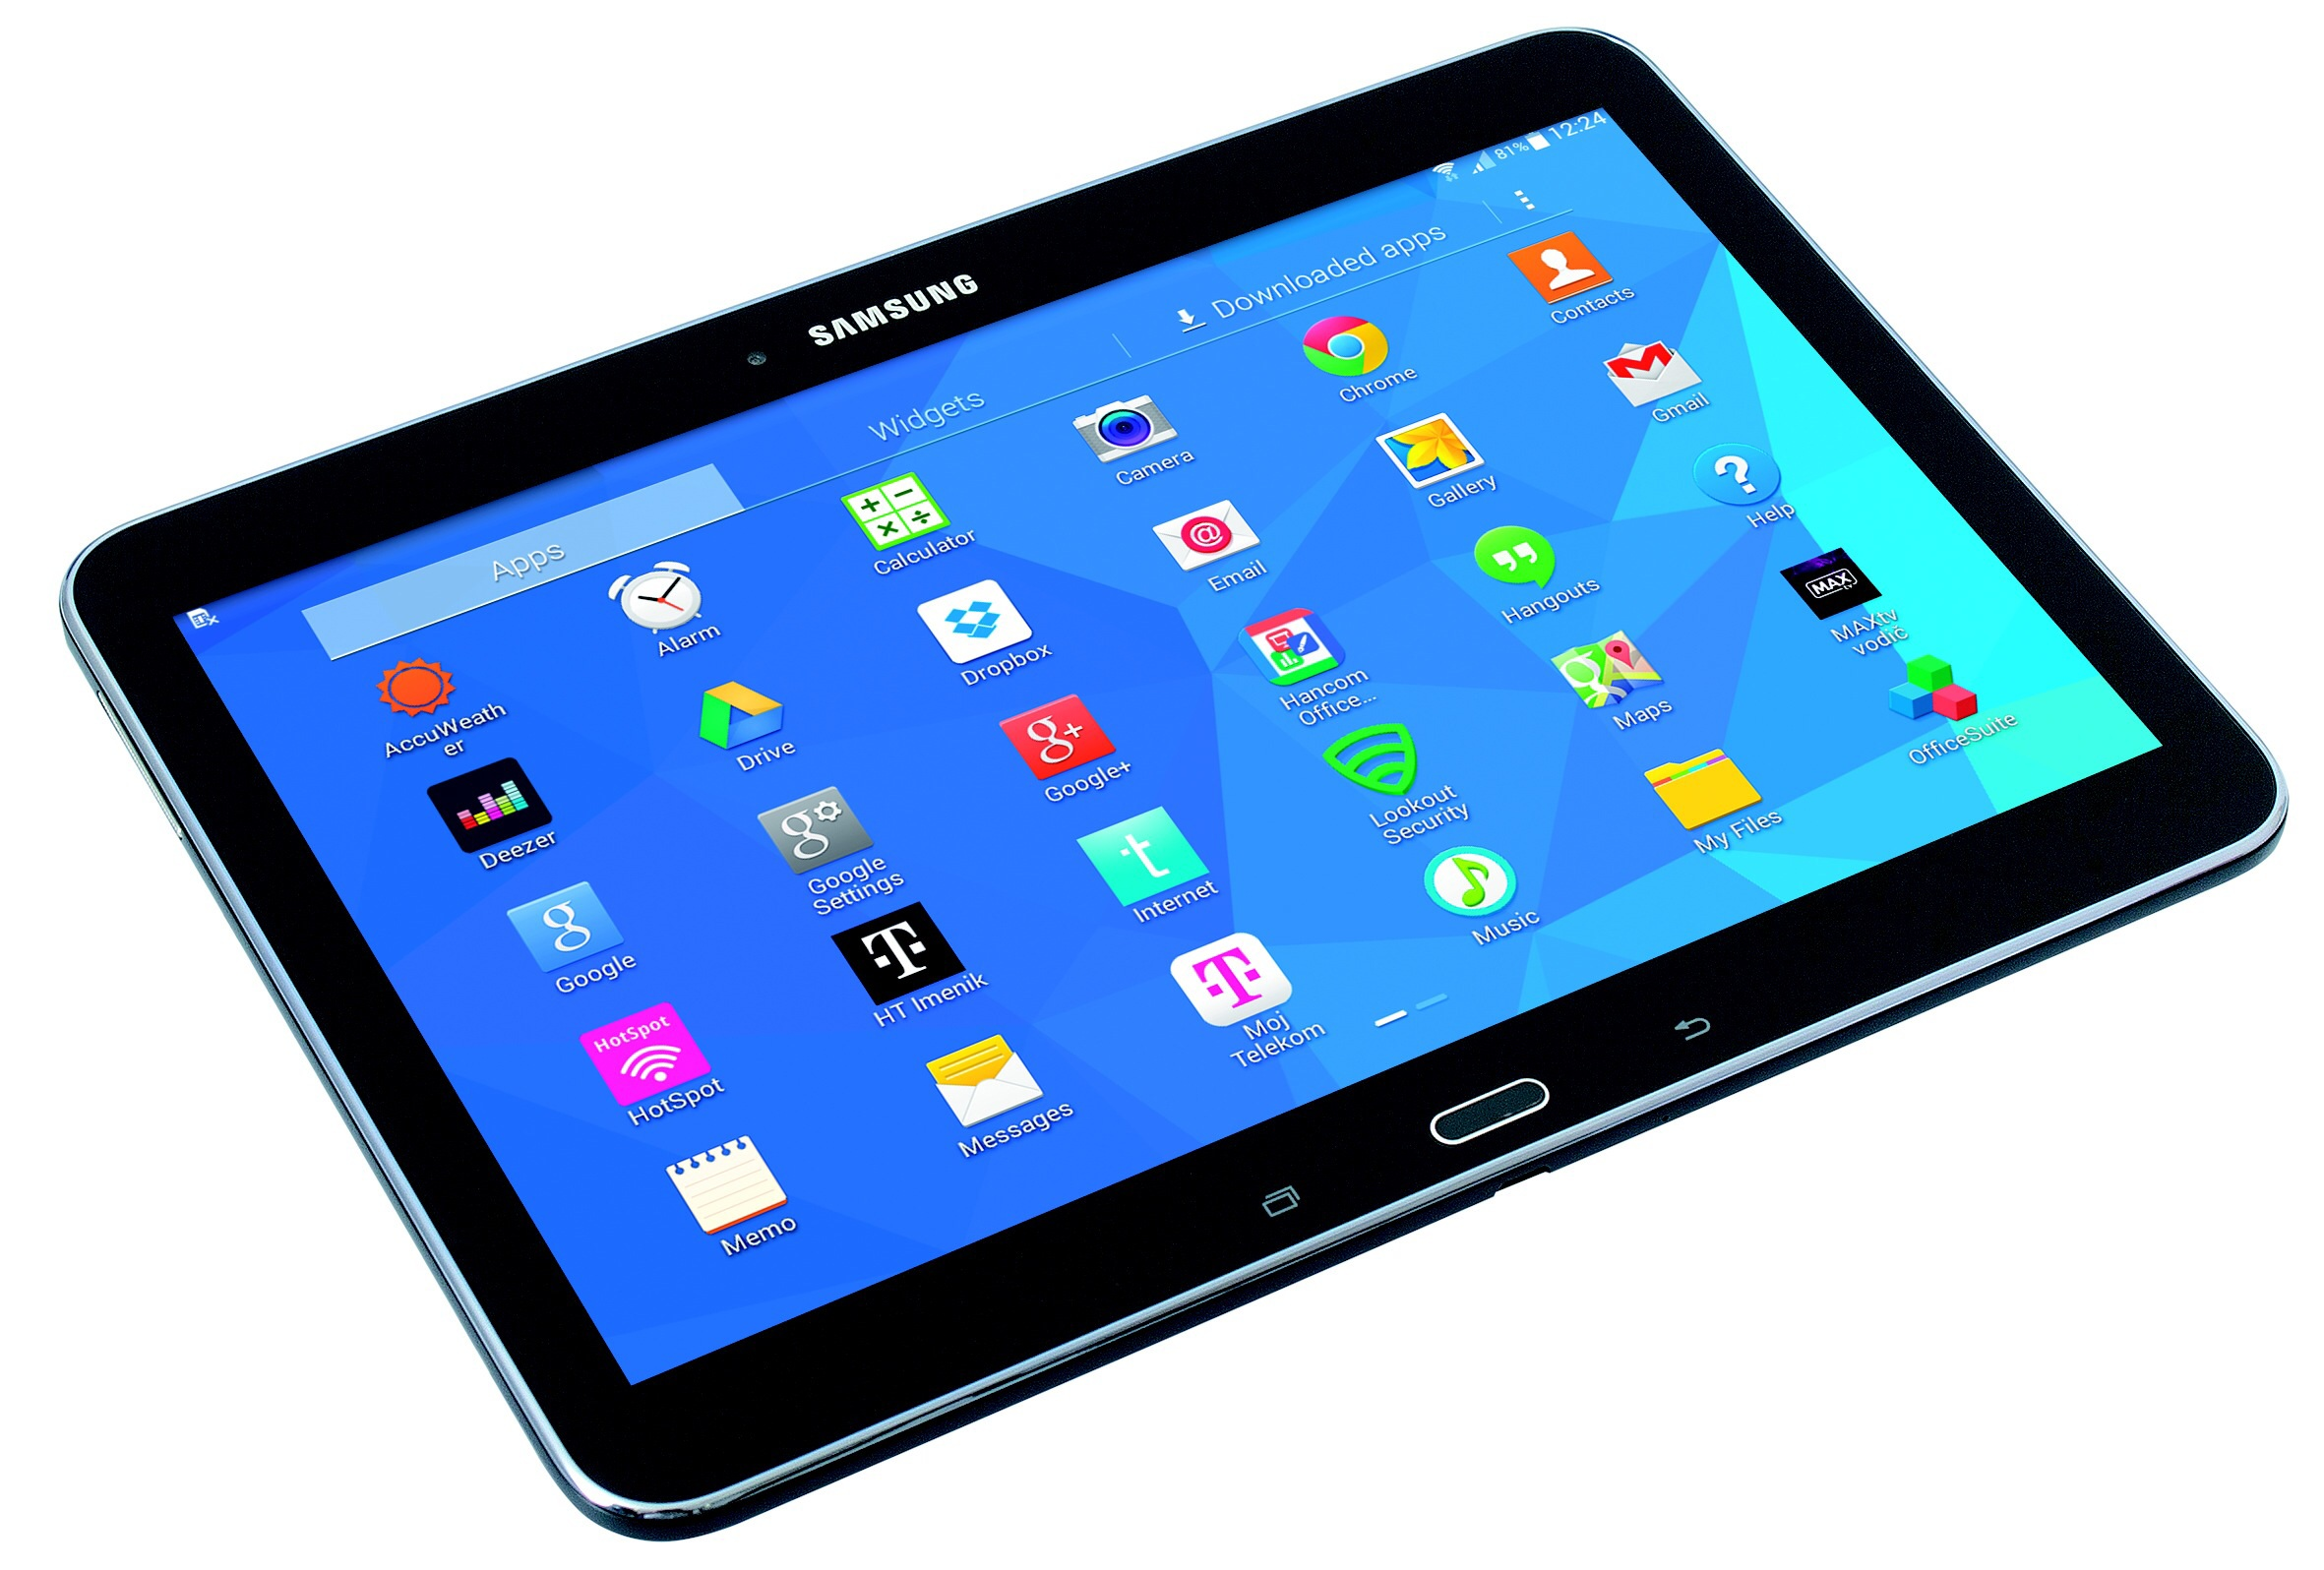 Samsung galaxy tab s 10 5 vs samsung galaxy tab 4 10 1 for Samsung galaxy s tablet